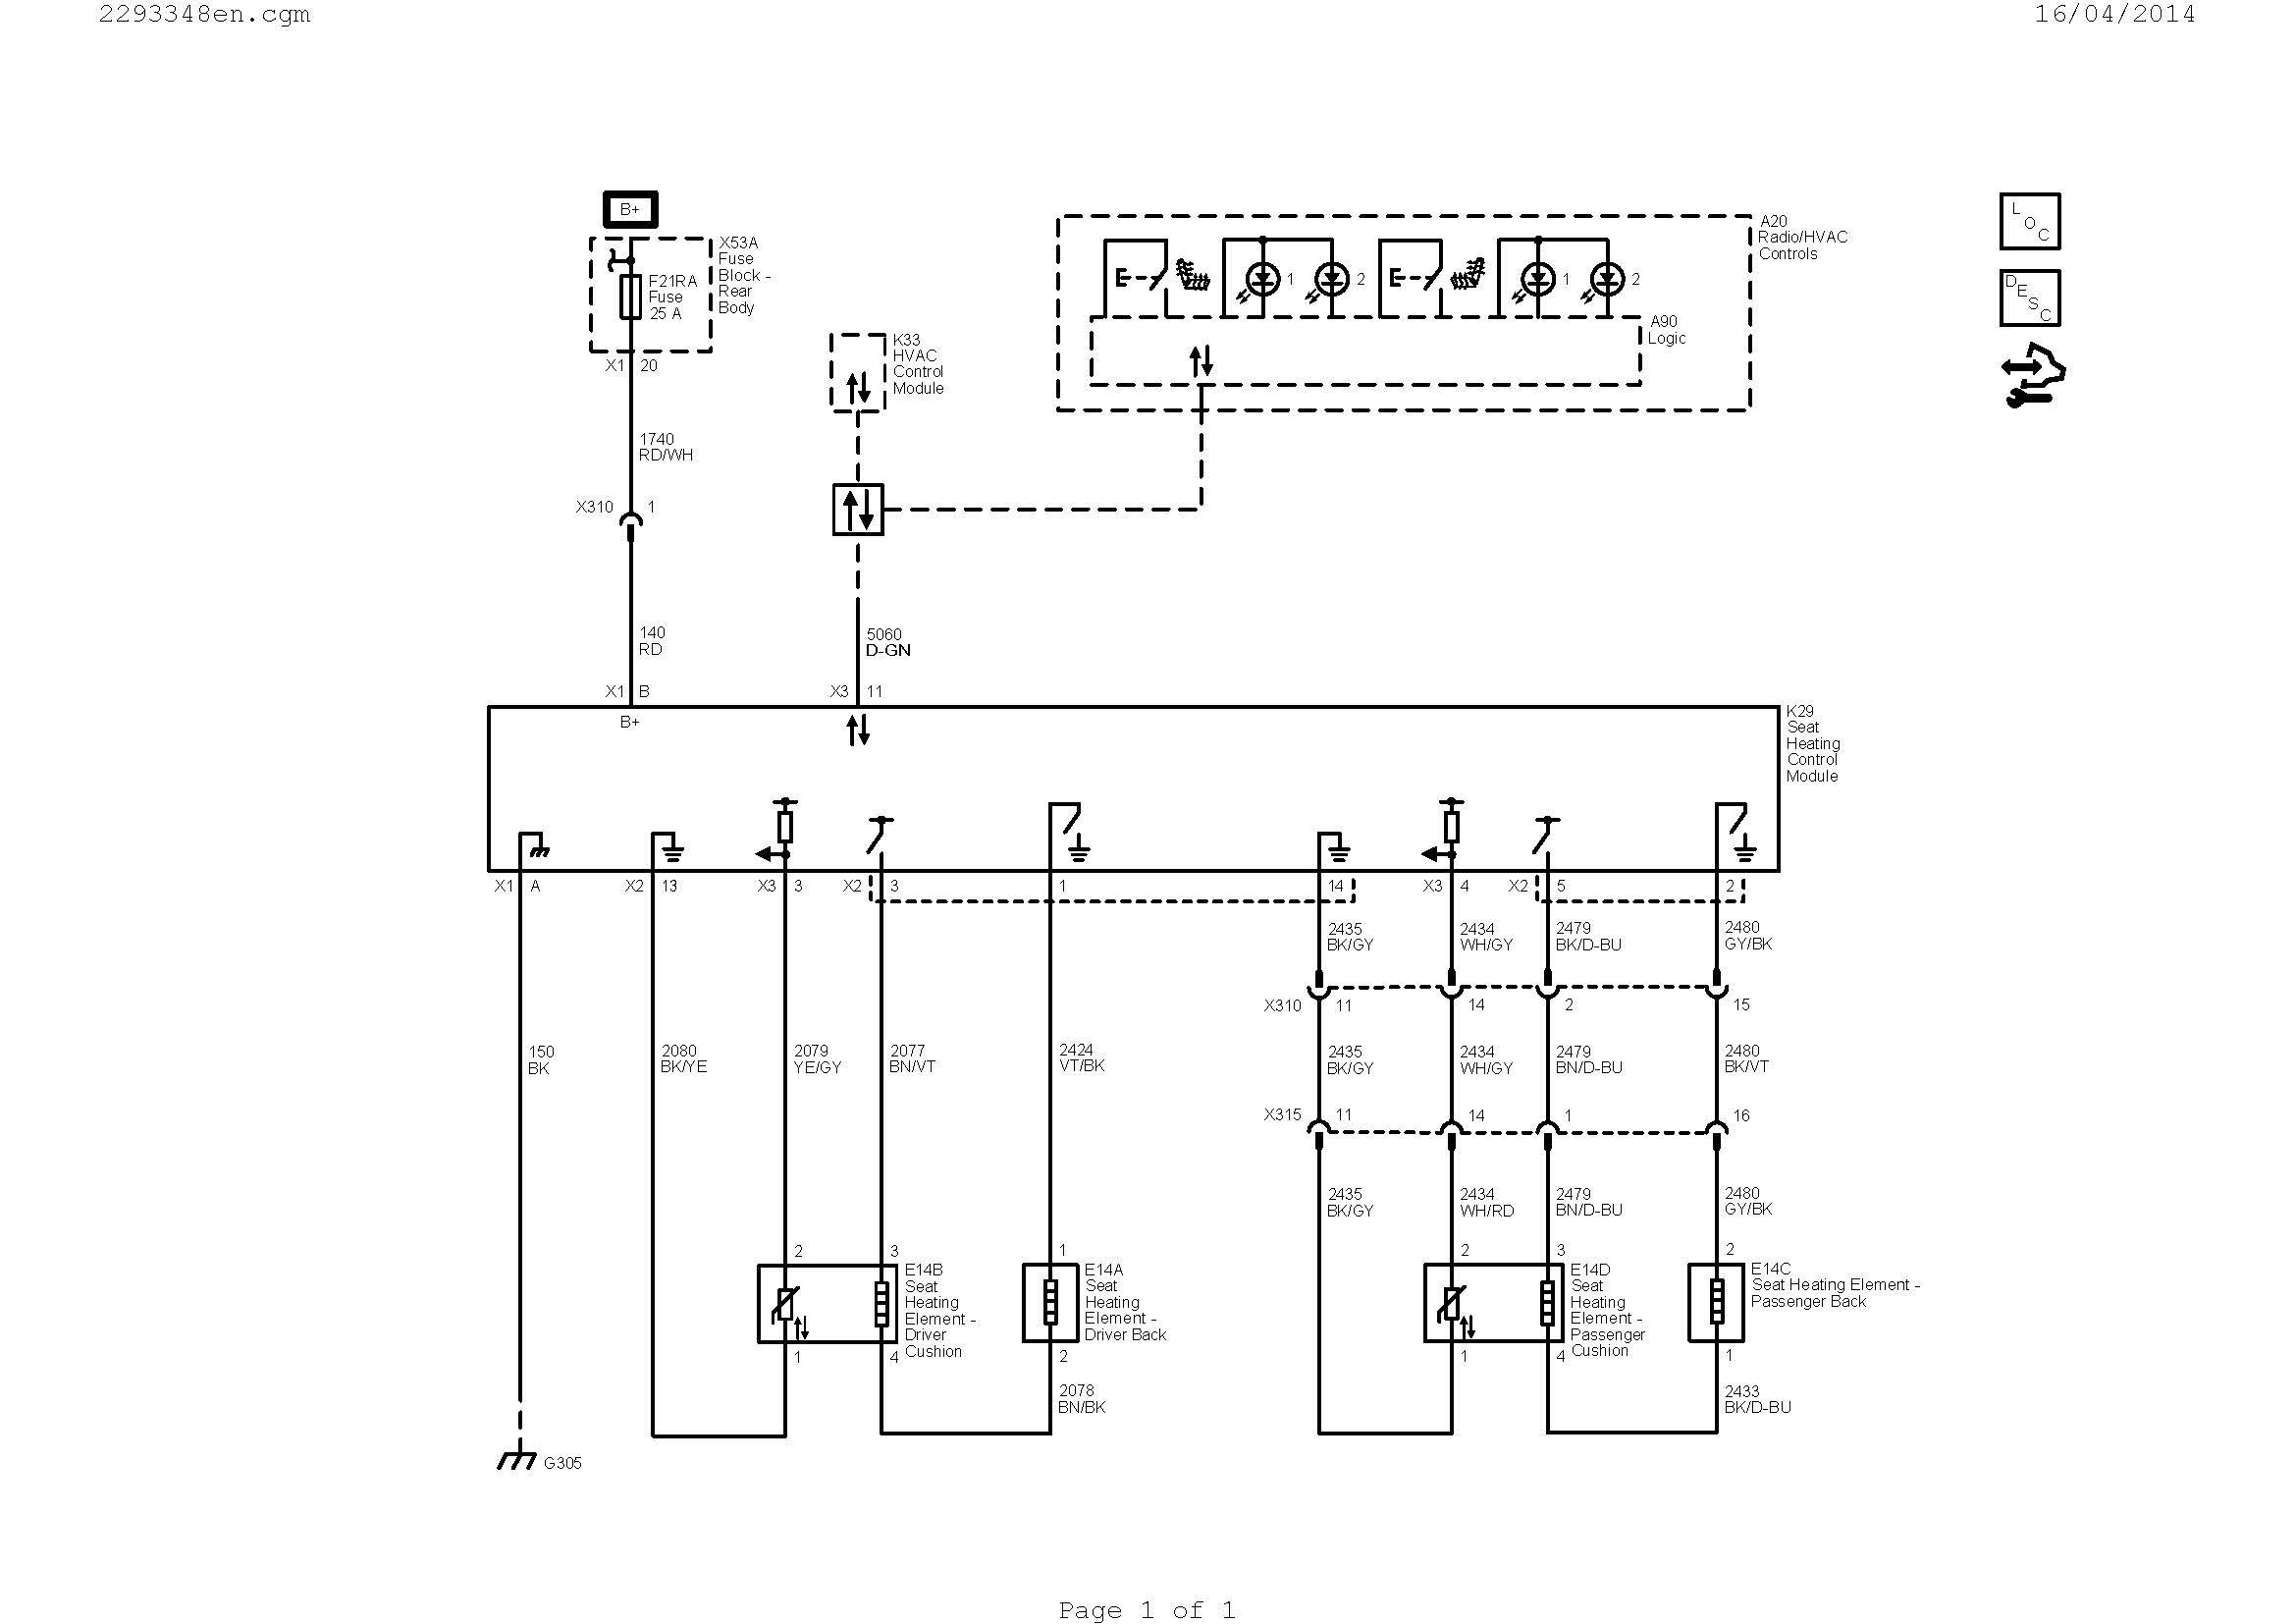 ac low voltage wiring diagram Download-7 wire thermostat wiring diagram Download Wiring A Ac Thermostat Diagram New Wiring Diagram Ac 7-a